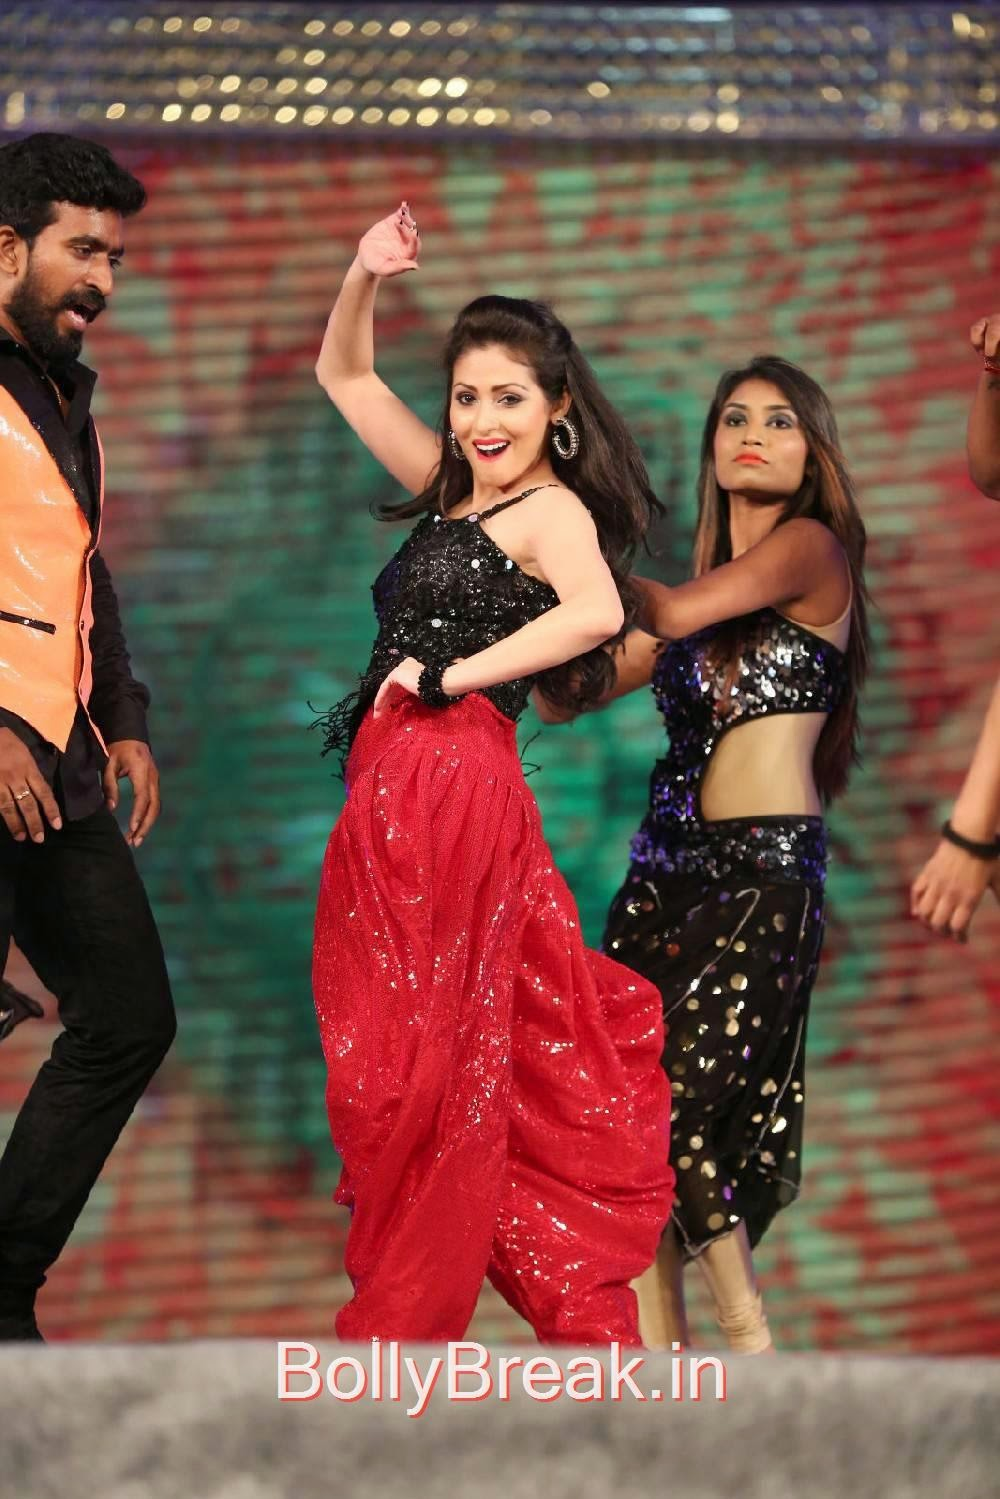 Heroines Dance Photos At Cinemaa Awards 2012: Actress Sada Sexy Dance Moves At Gama Music Awards 2014